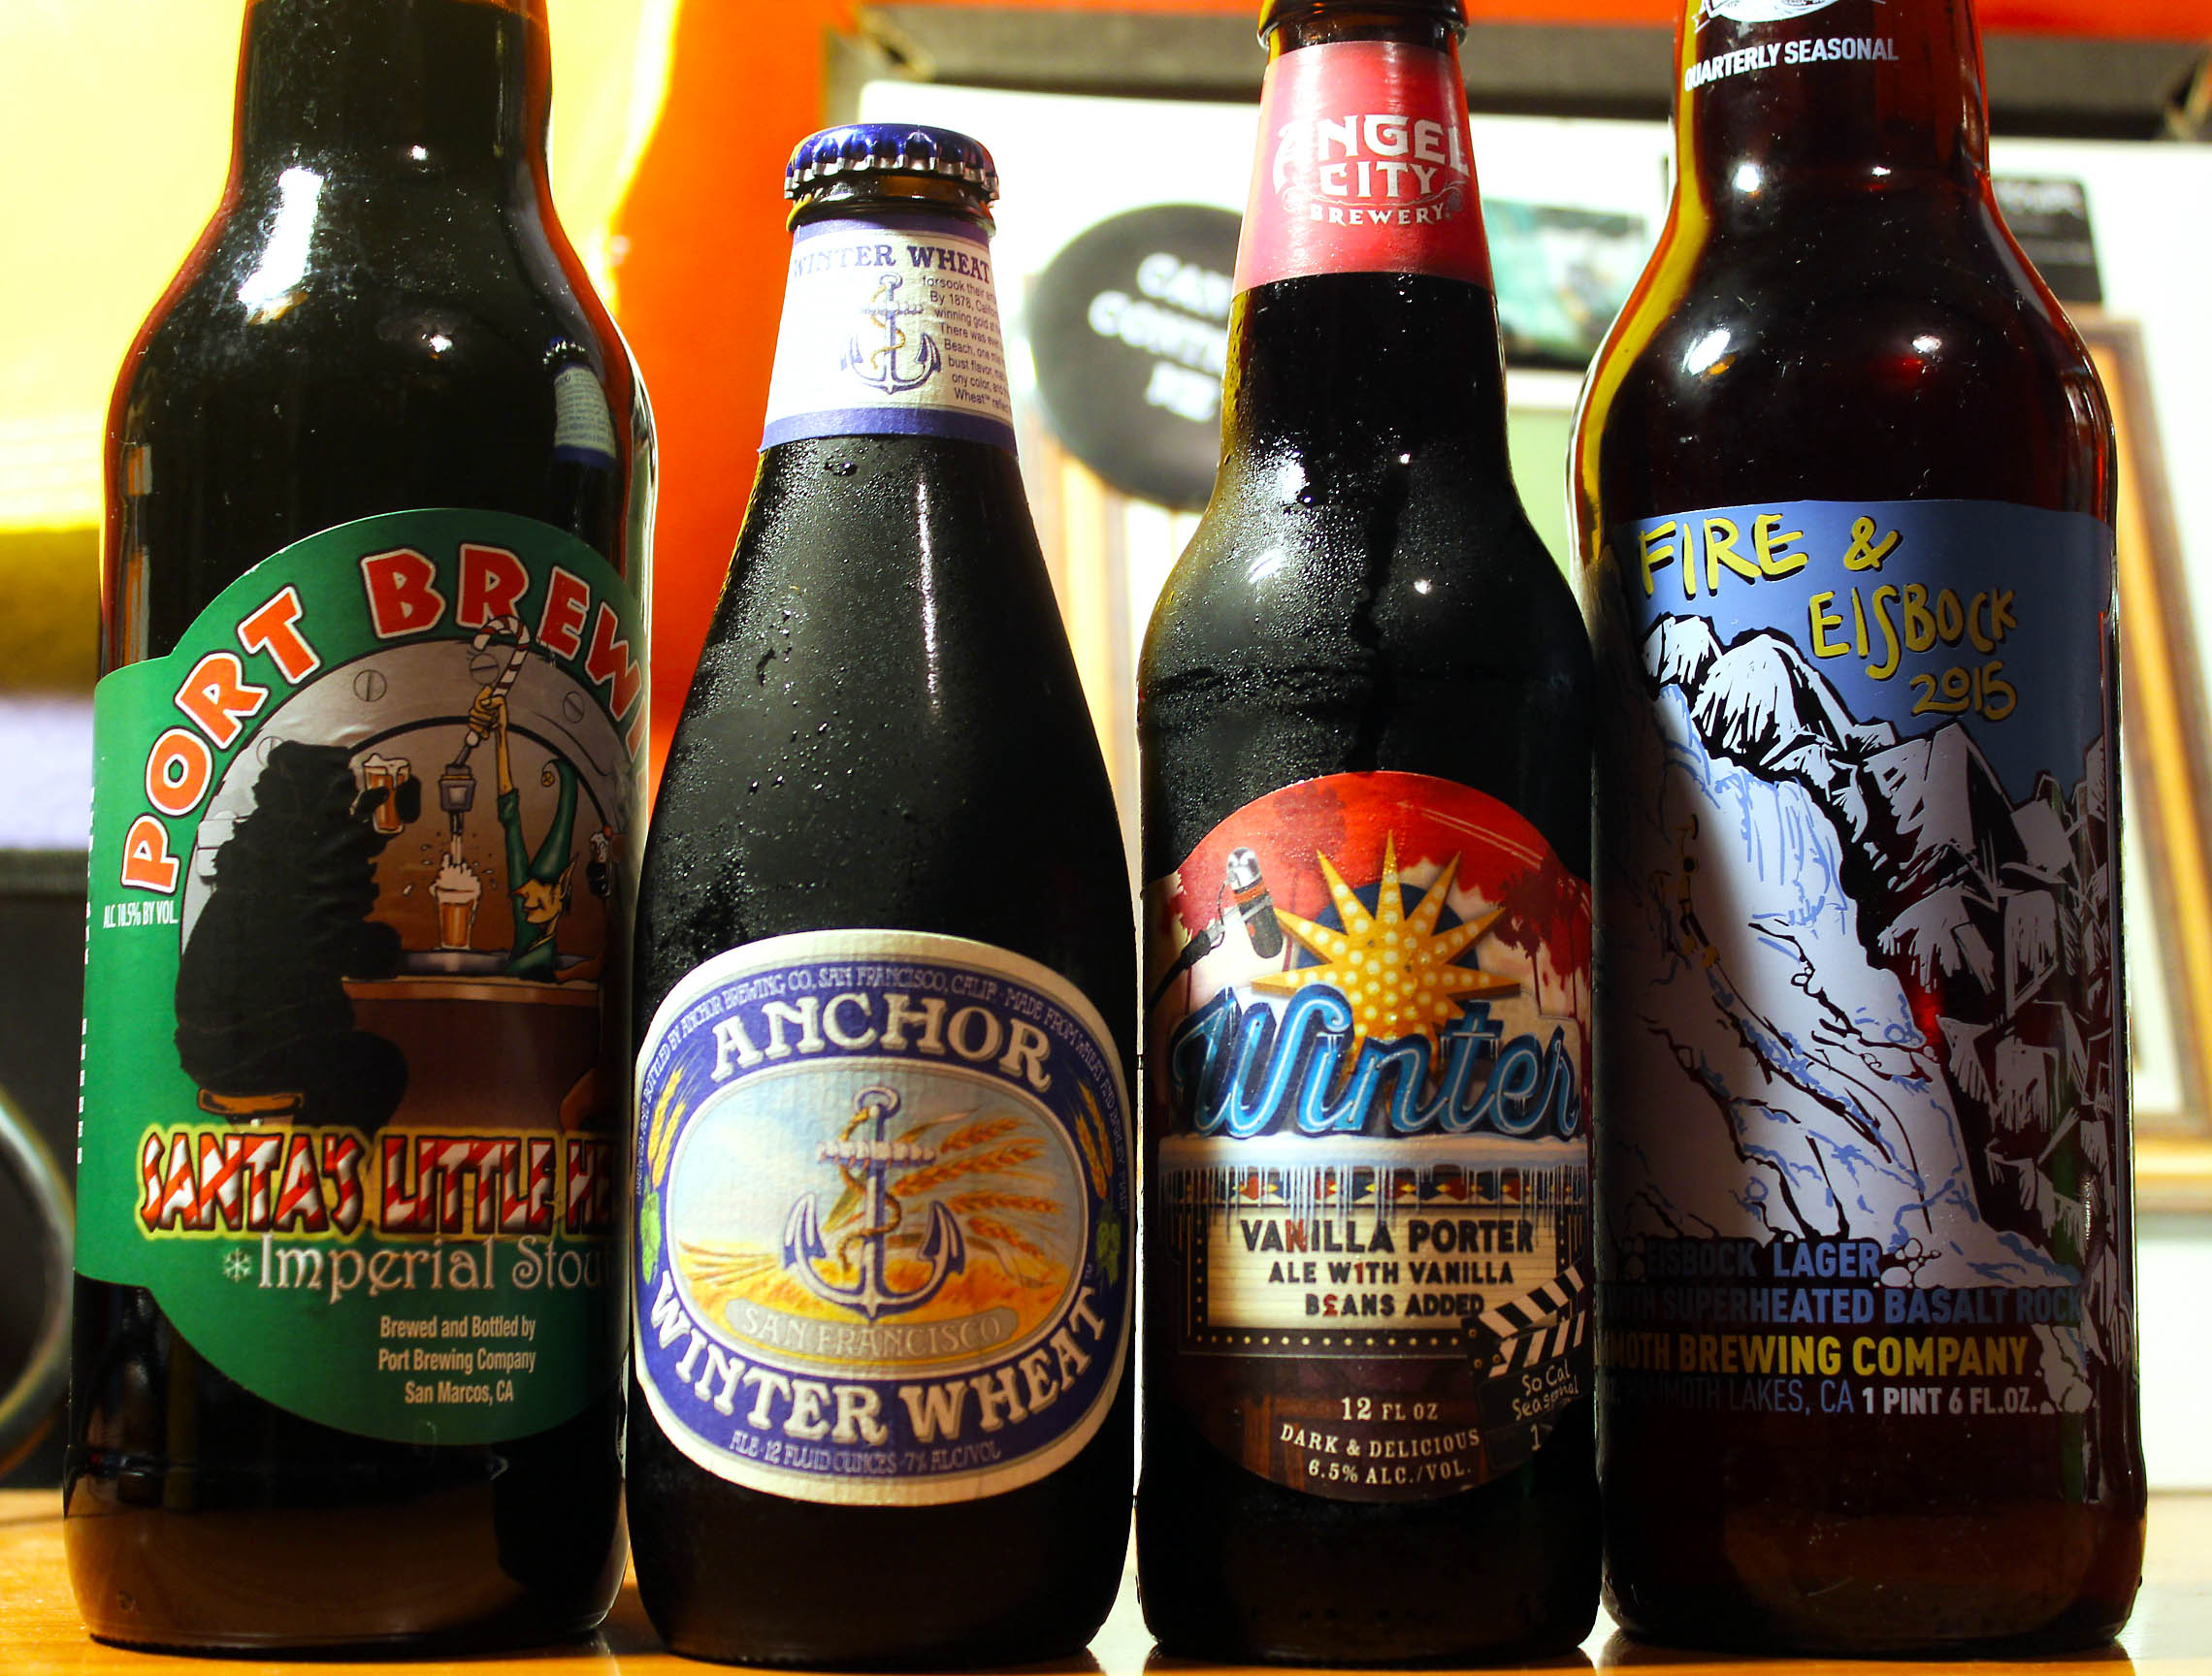 Seasonal Winter Beers from California